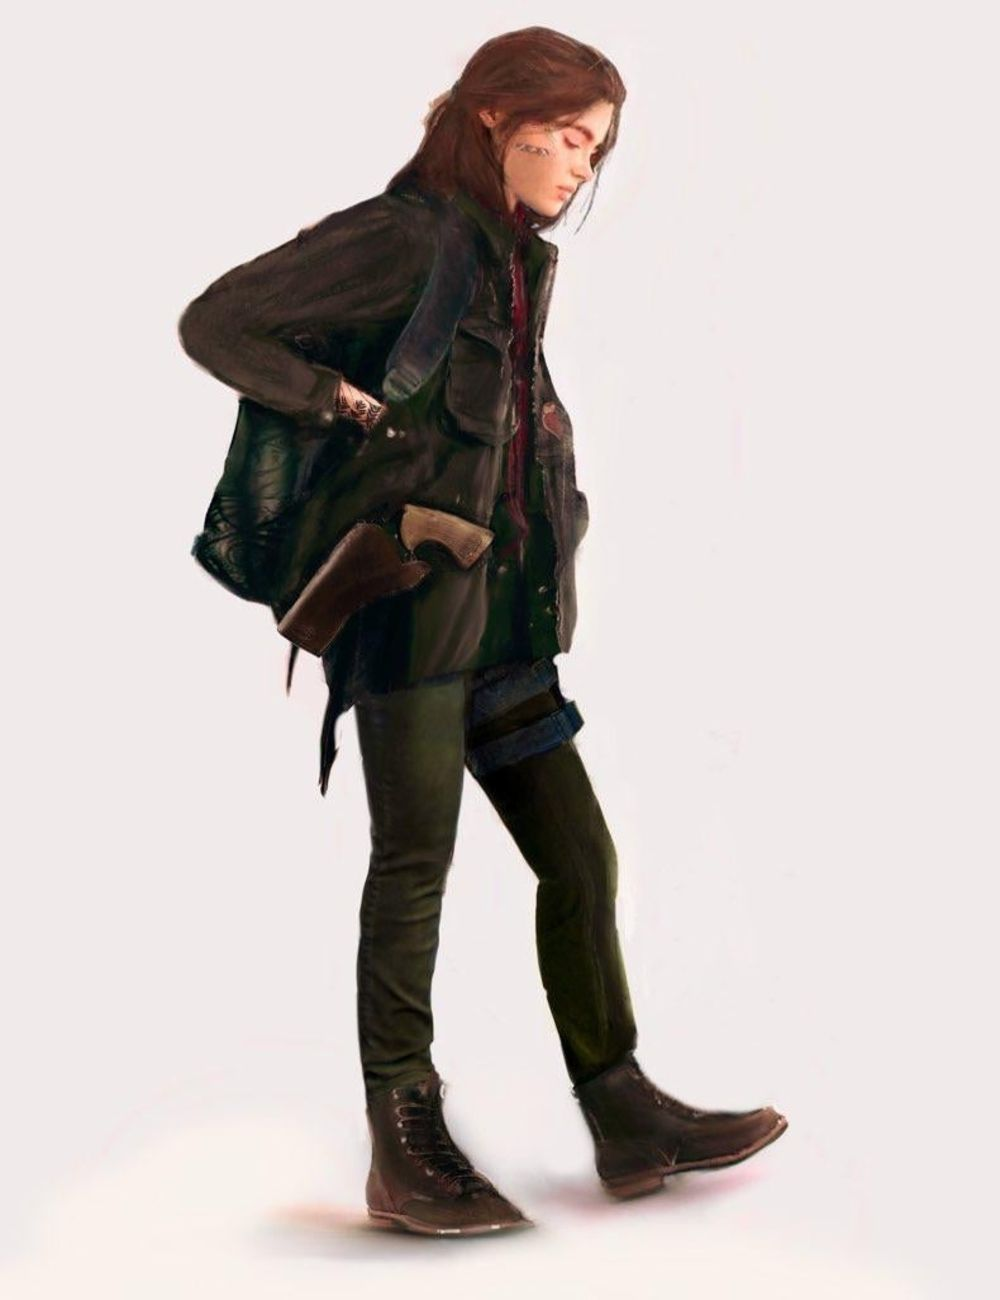 Incredible Painting Shows What Ellie Could Look Like In The Last of Us 3